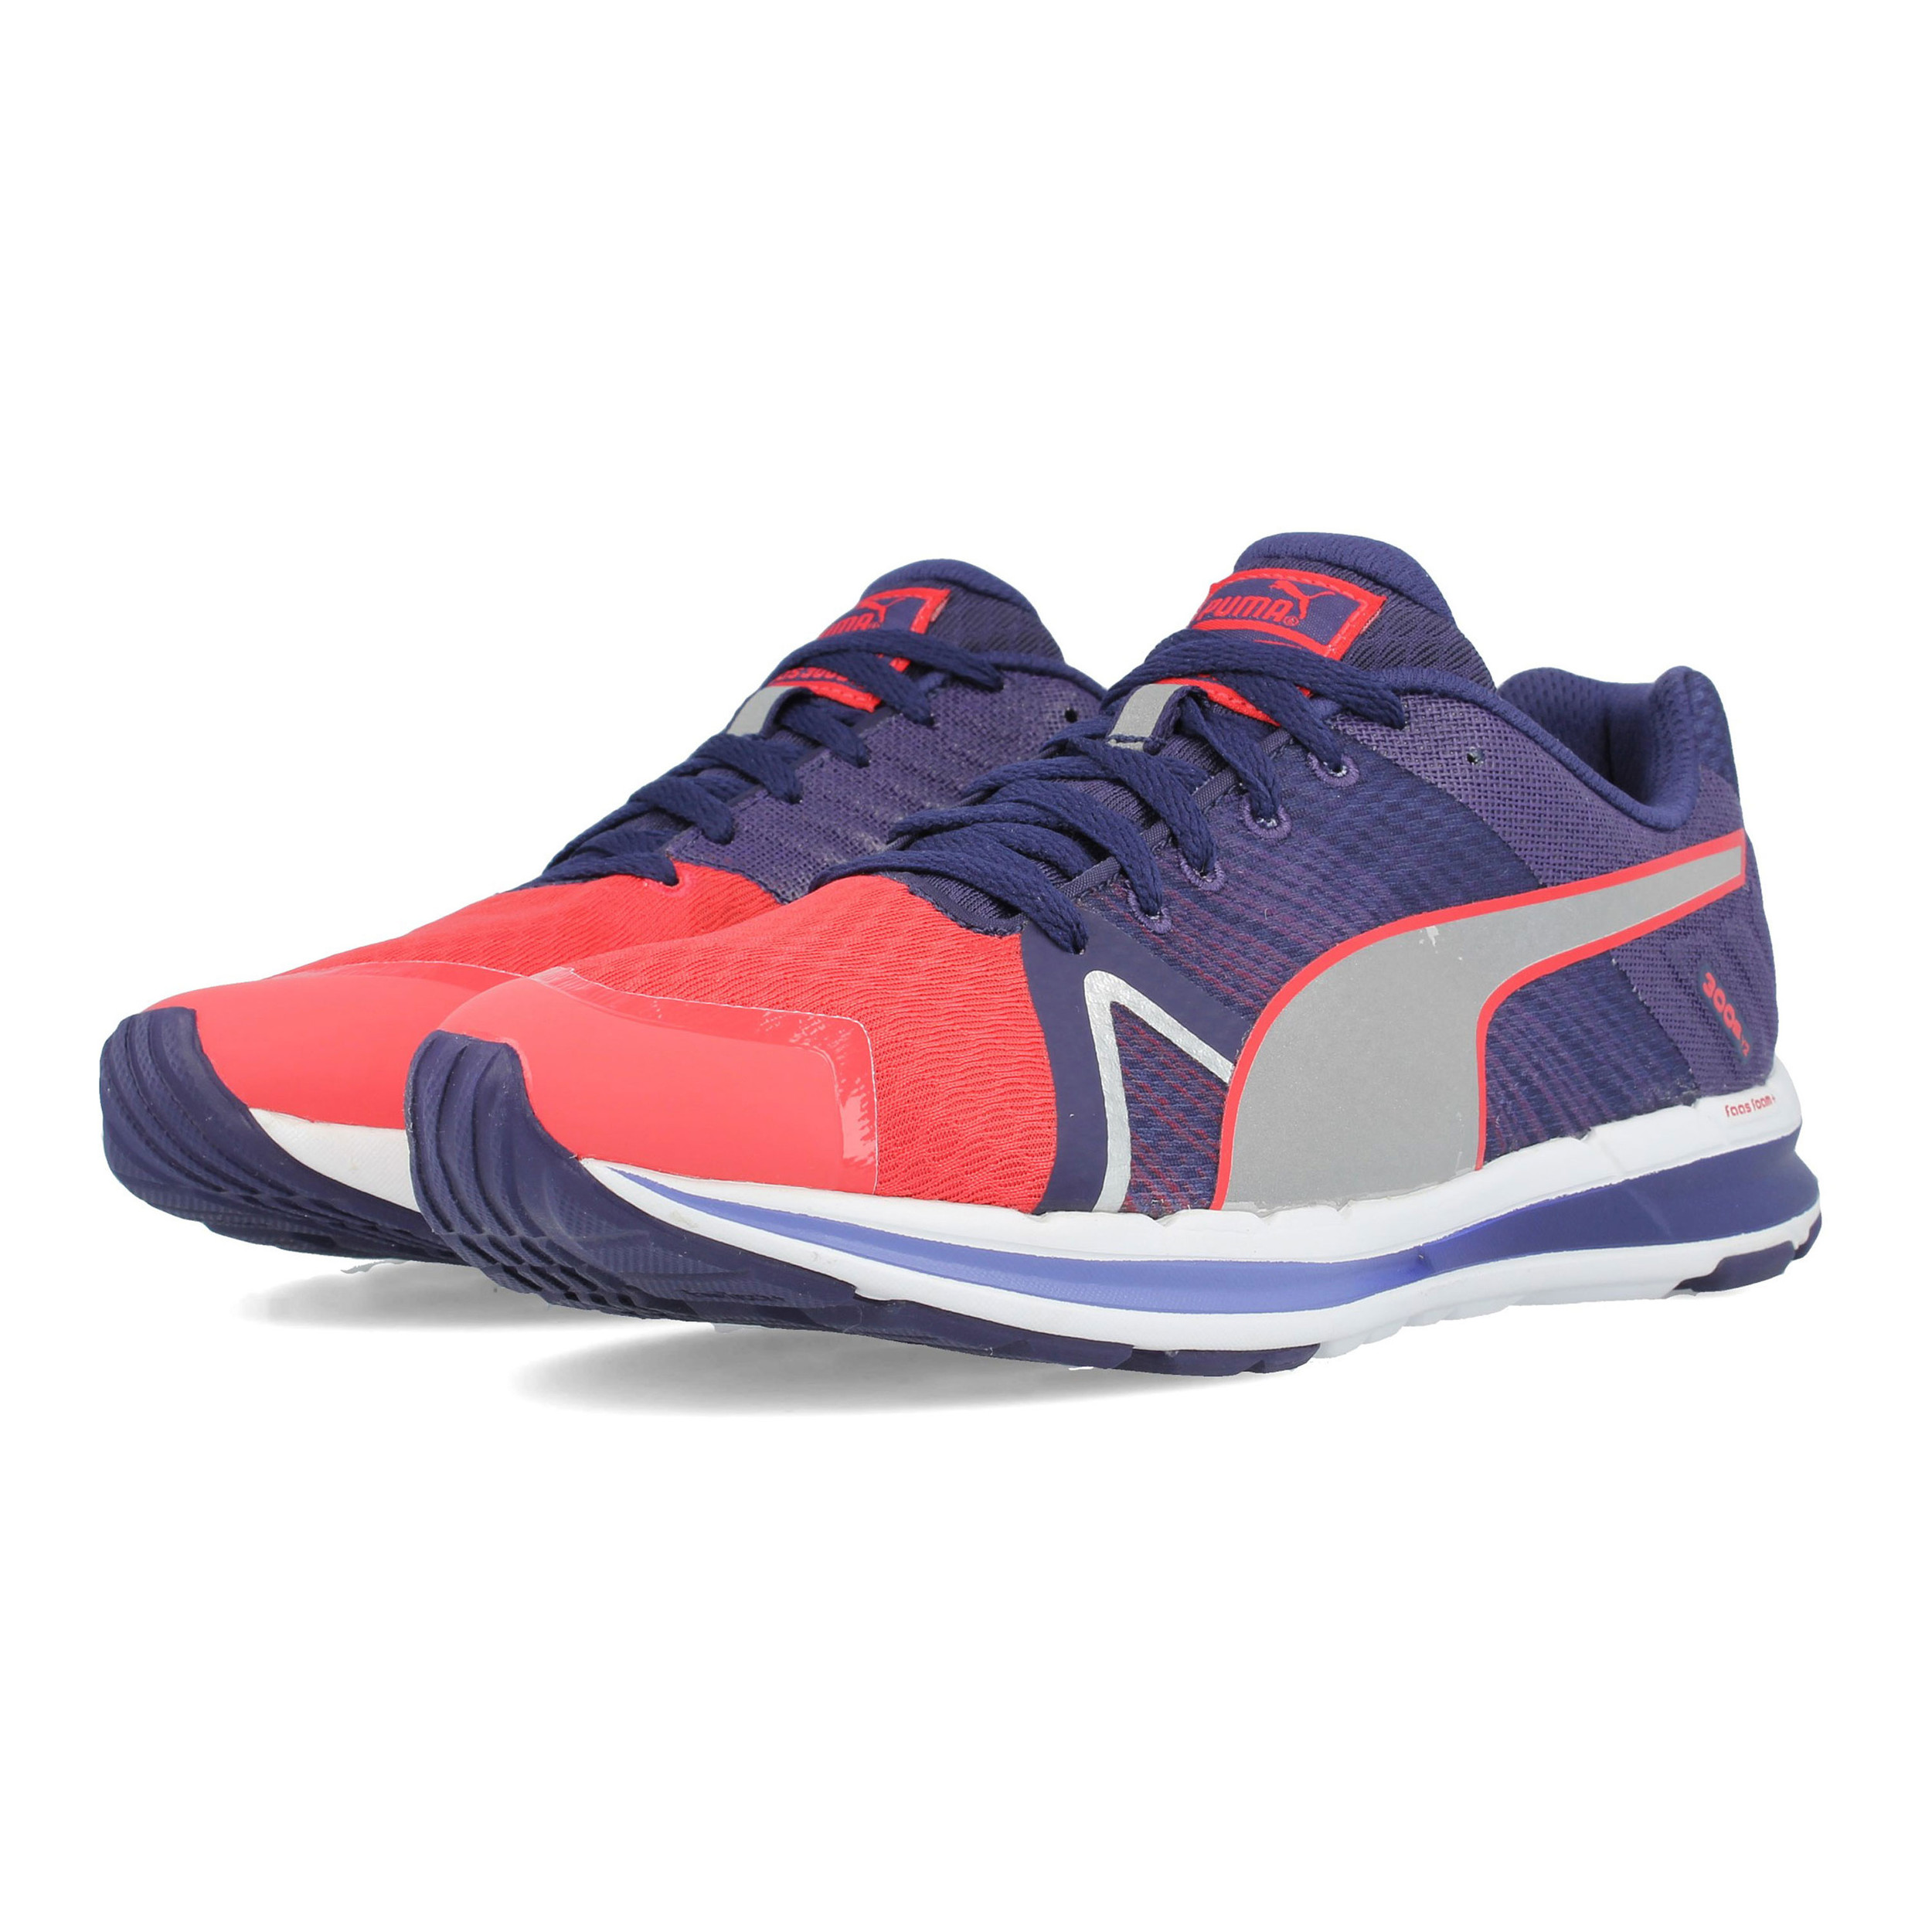 007b13fb8187 Details about Puma Womens Faas 300 S v2 Running Shoes Trainers Sneakers  Pink Purple